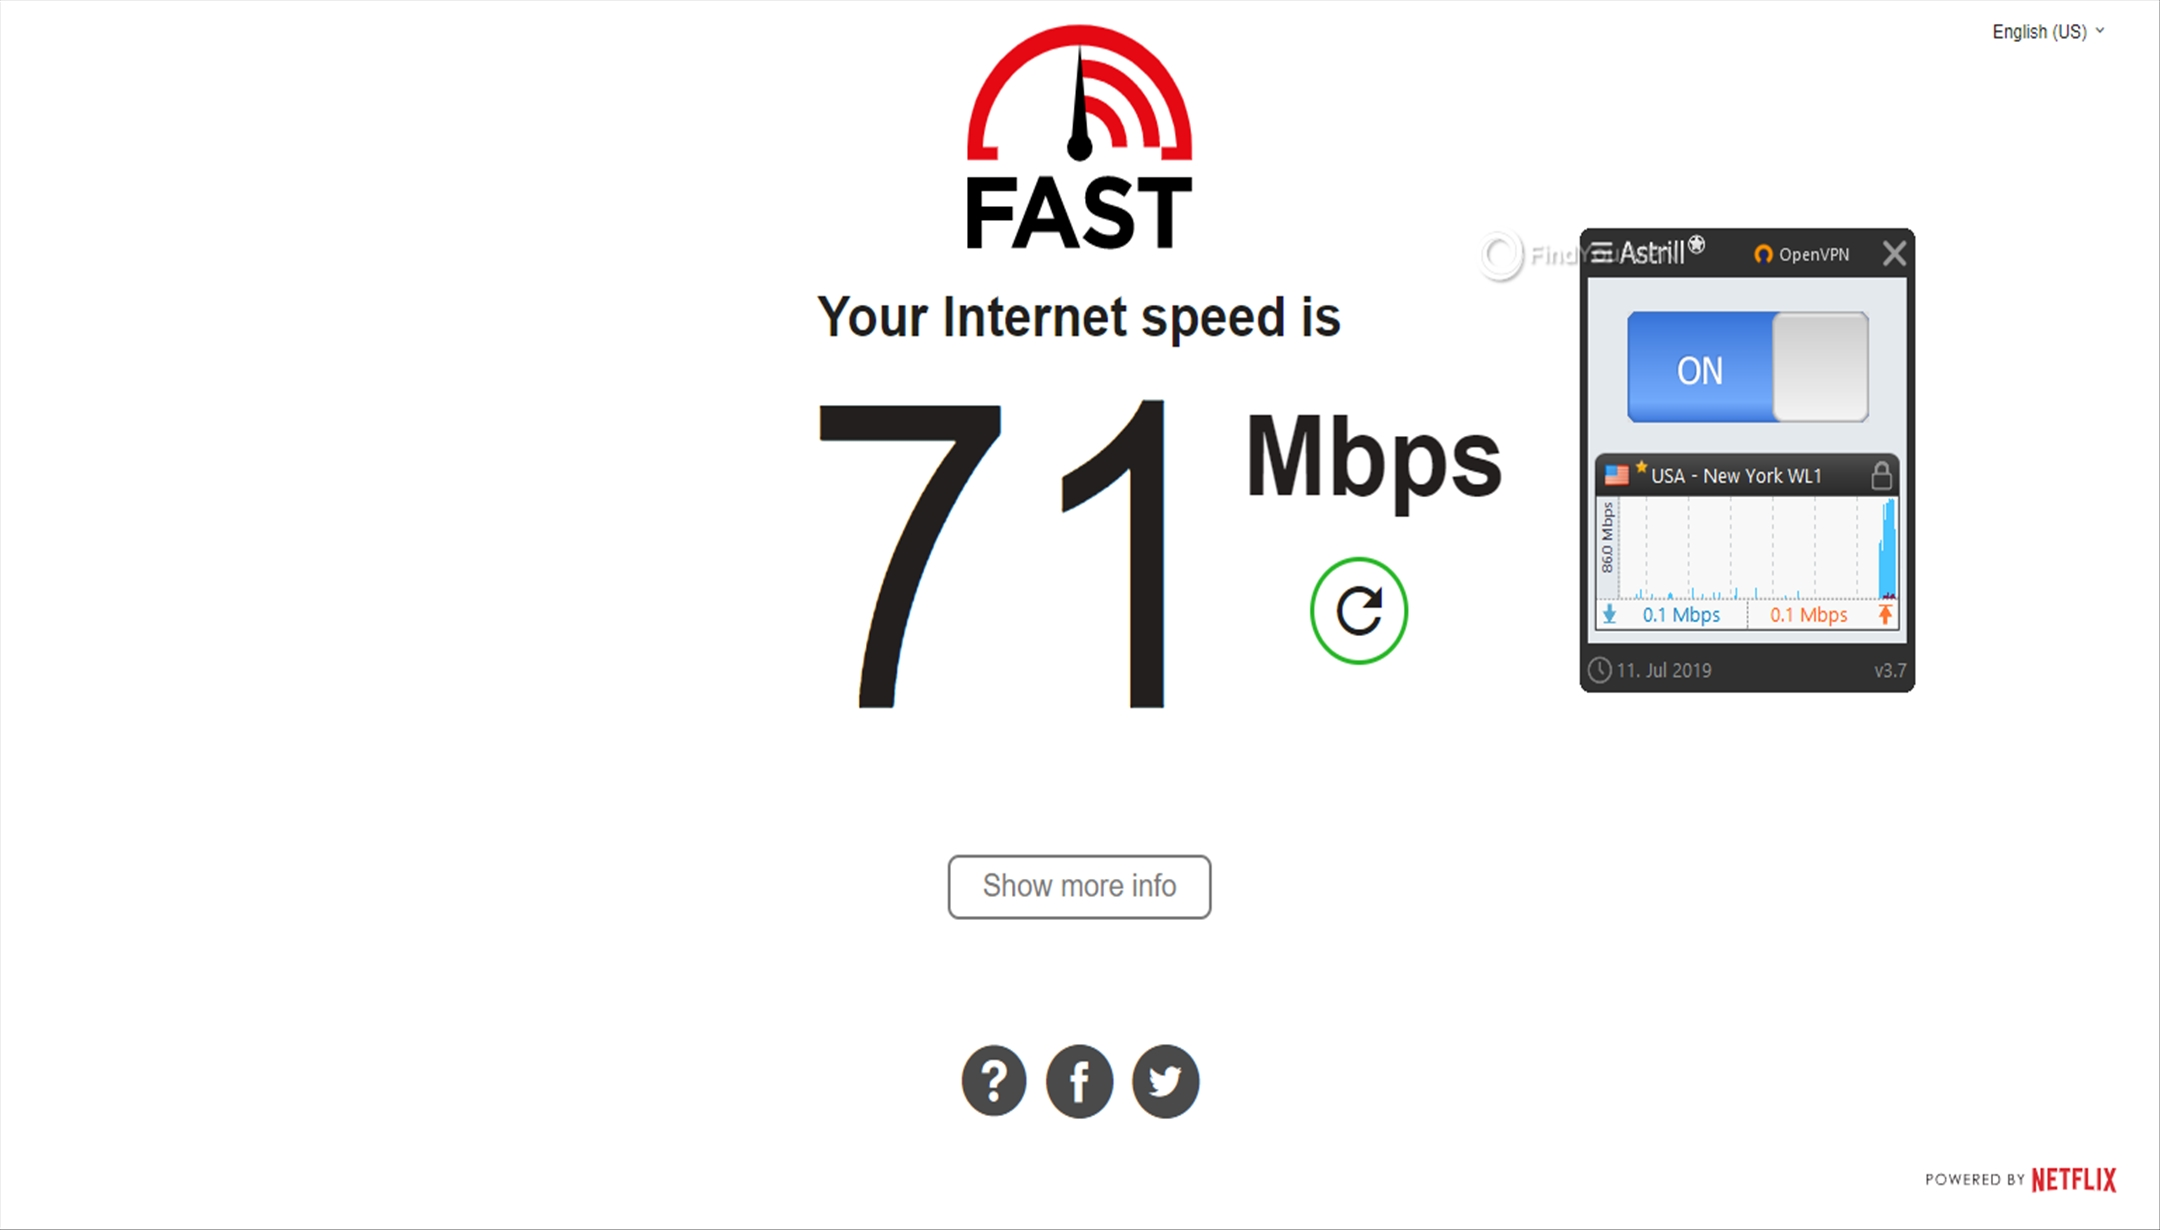 Astrill Speed Test USA 71 Mbps